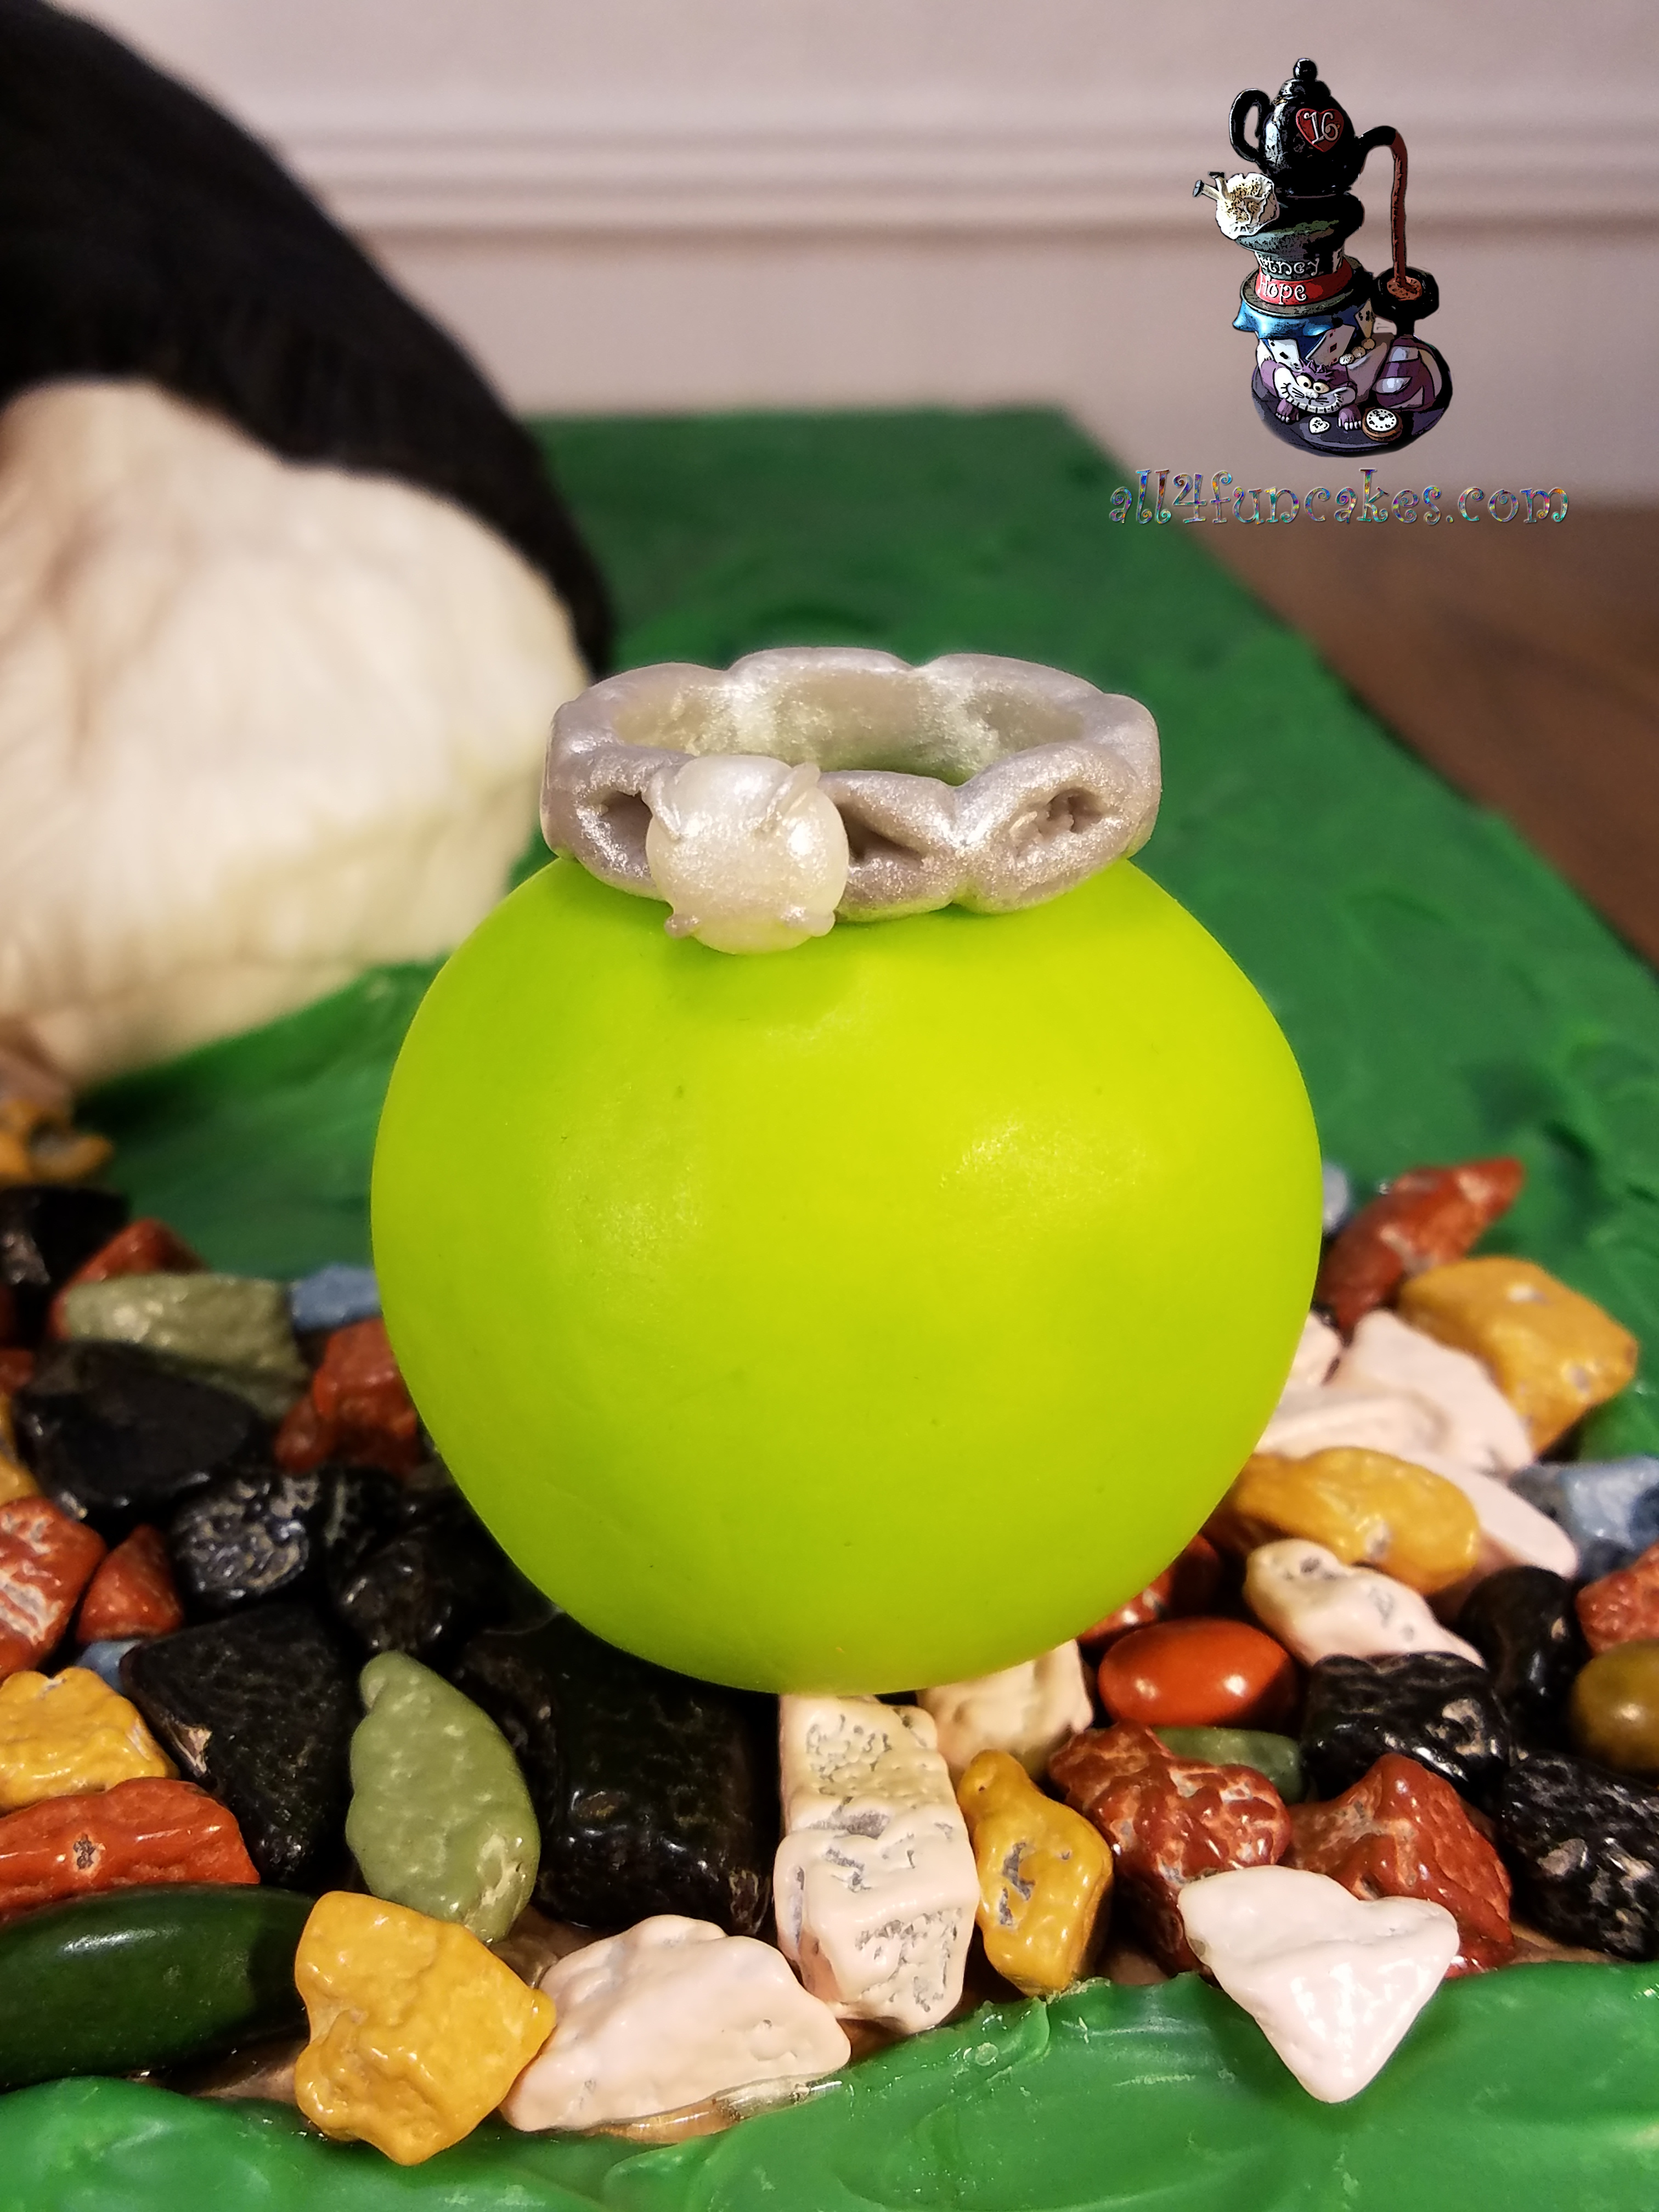 Tennis Ball Toy with Engagement Ring for Noah the Bernese Mountain Dog Sculpted Cake by All4Fun Cakes LLC 2018